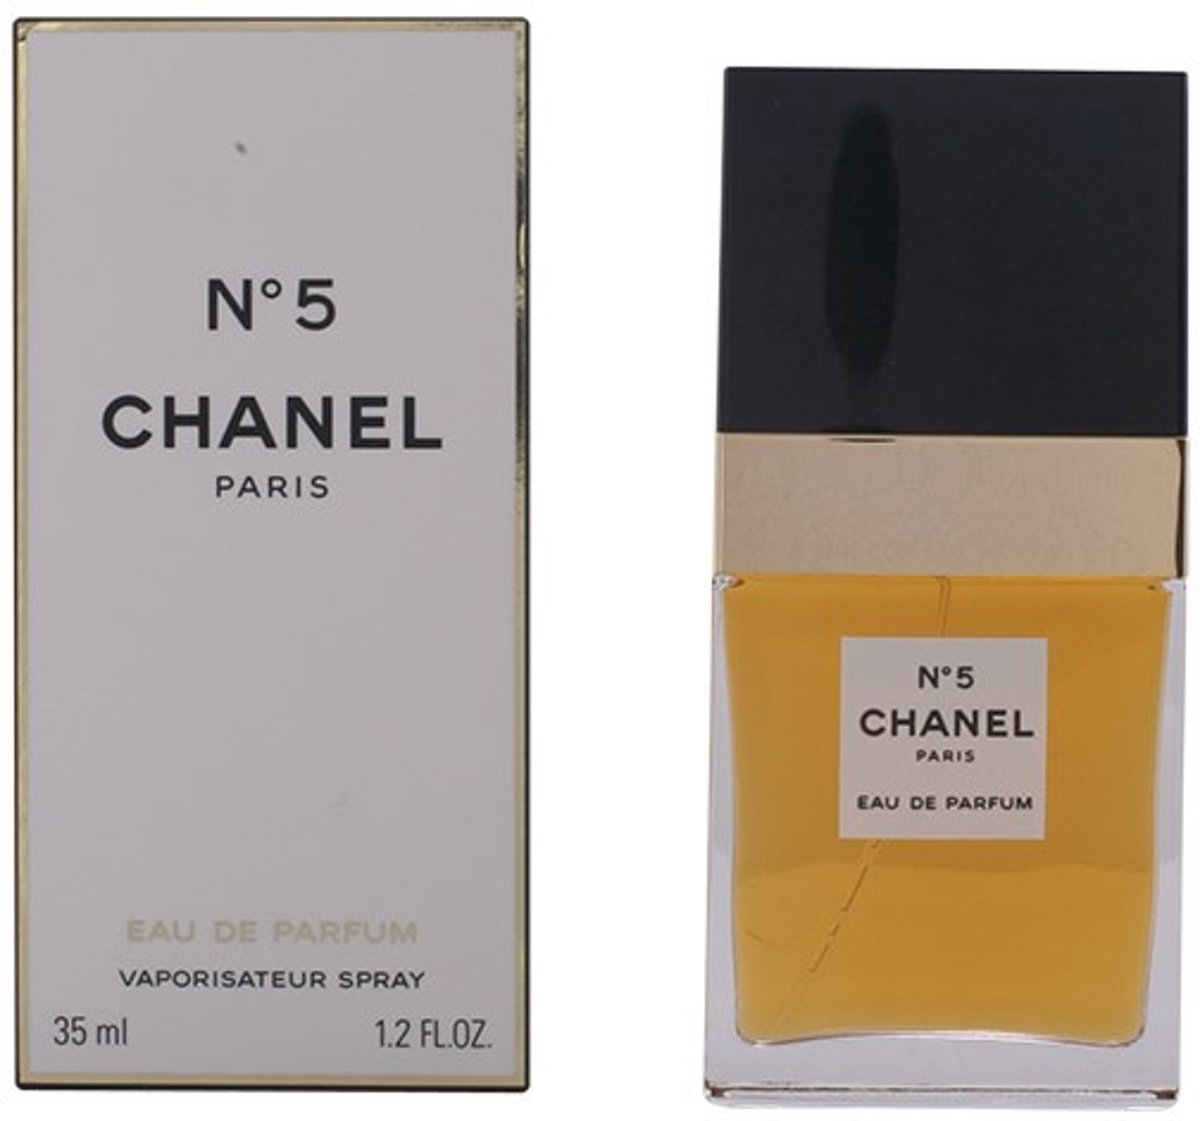 Chanel No 5 Edp Spray 35 ml